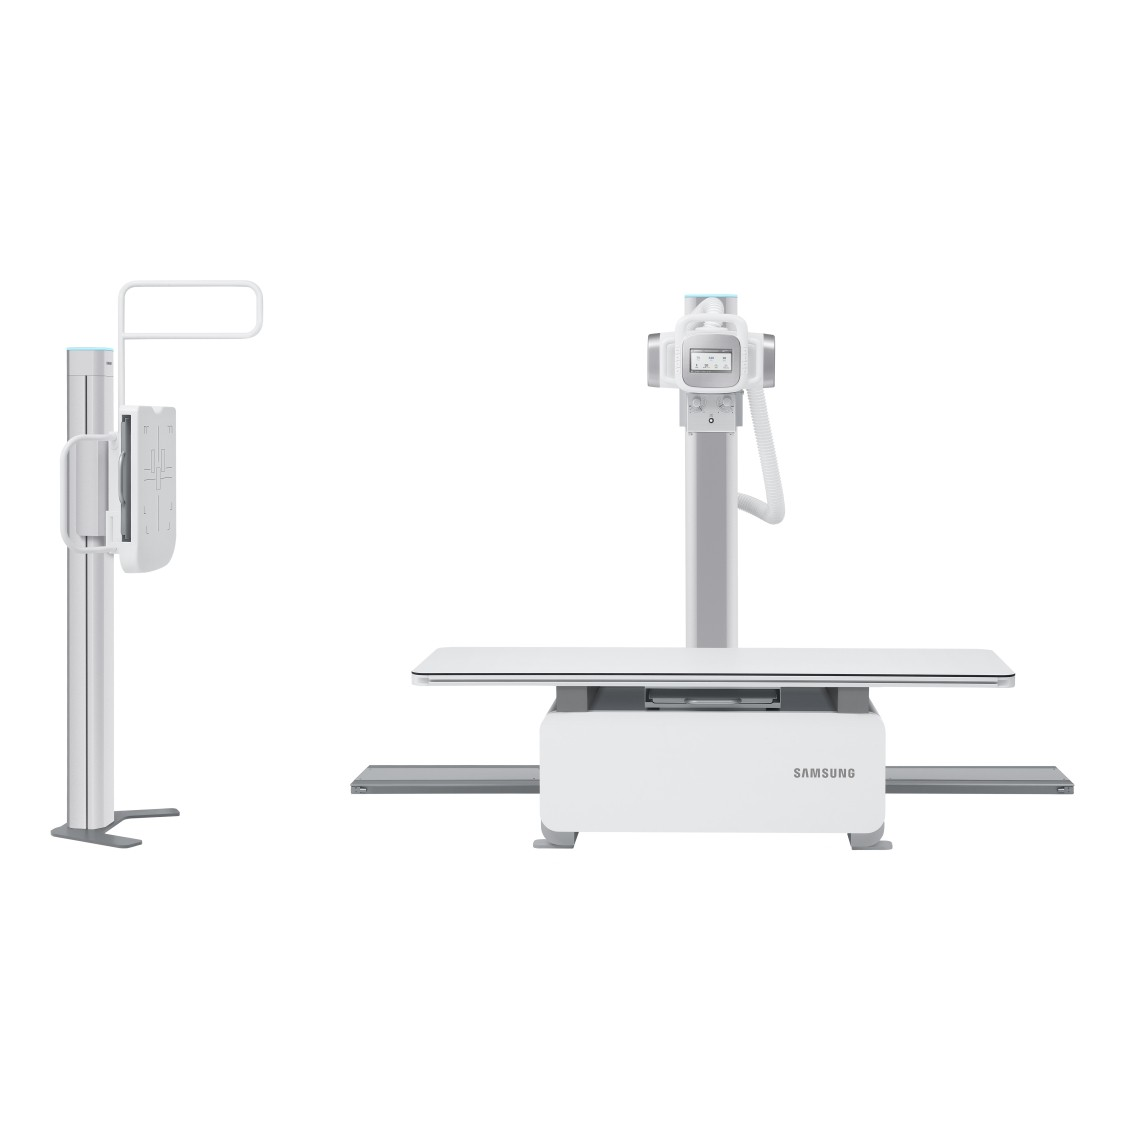 Xgeo Gf50 Floor Mounted Digital X Ray